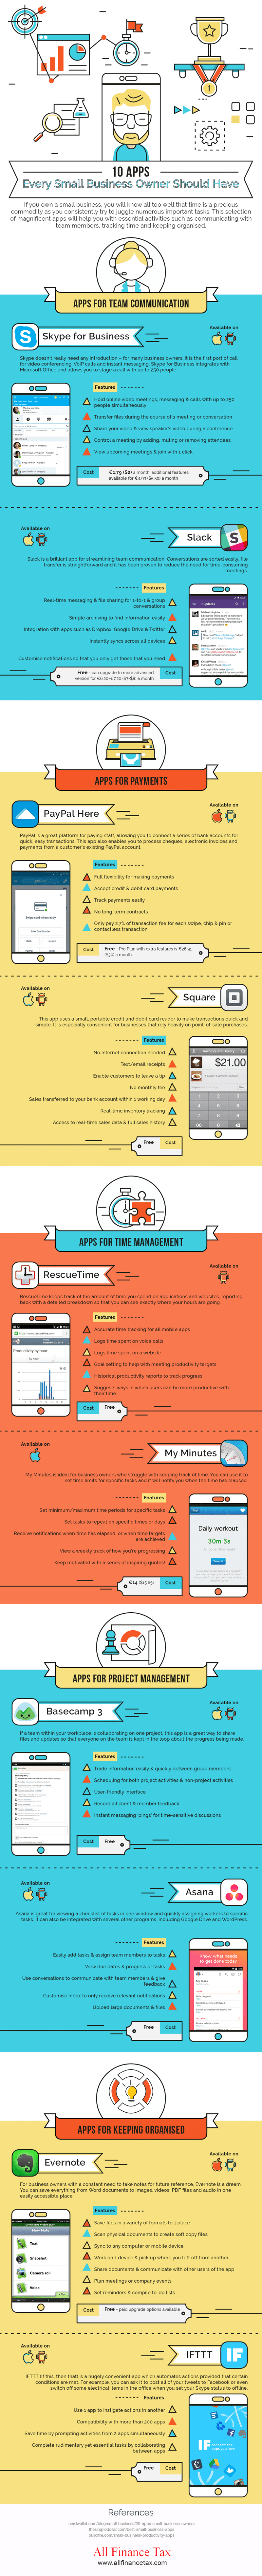 10 Apps Every Small Business Owner Should Have – Infographic